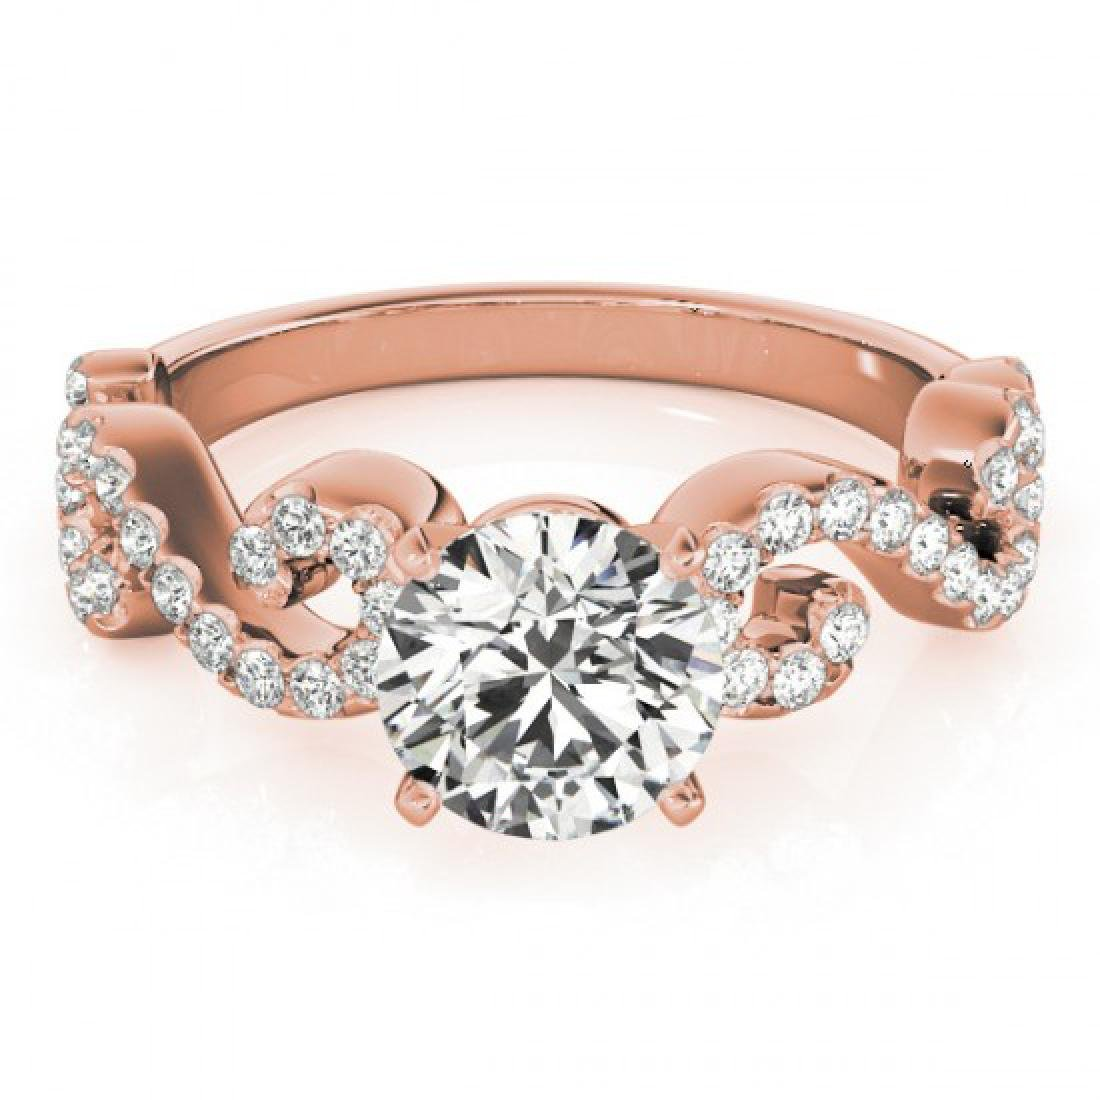 1.4 CTW Certified VS/SI Diamond Solitaire Ring 14K Rose